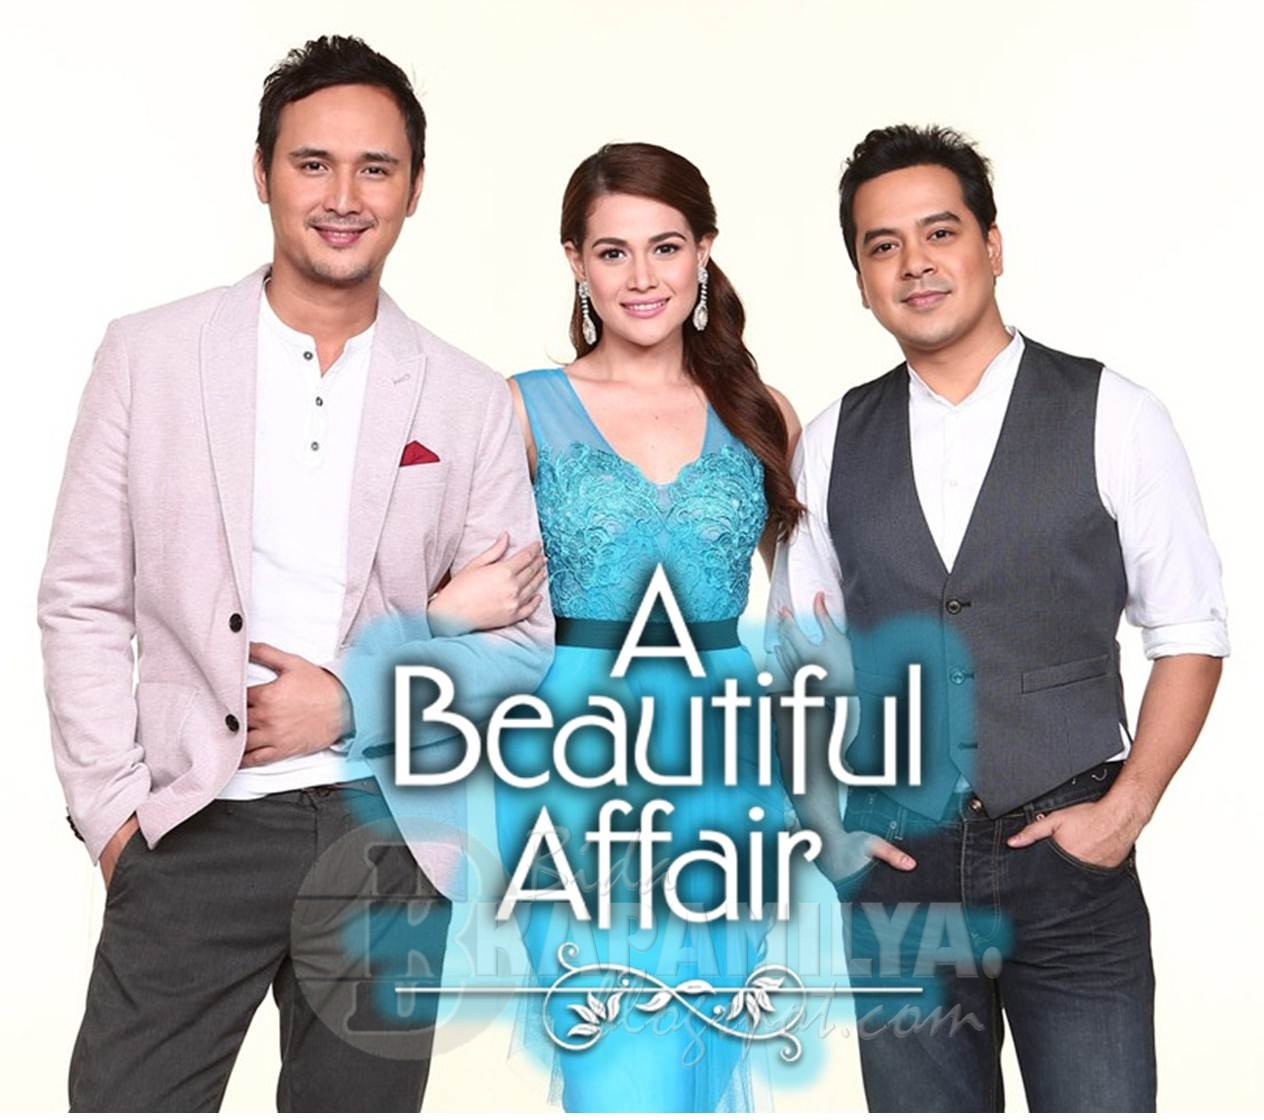 A BEAUTIFUL AFFAIR - OCT. 31, 2012